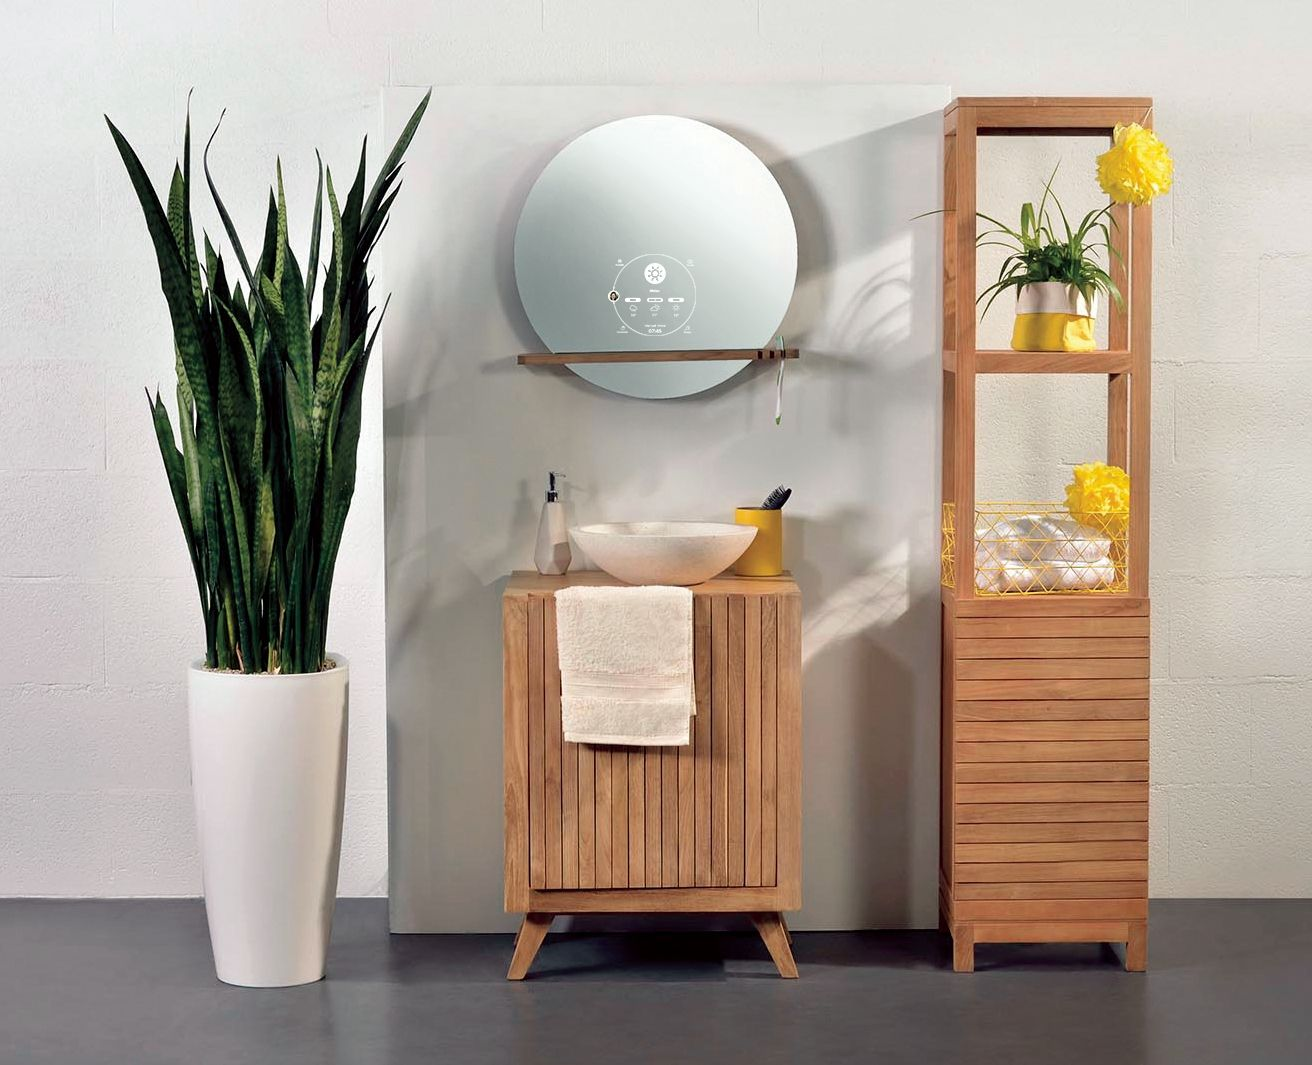 Miliboo pr sente son miroir connect for Miroir connecte